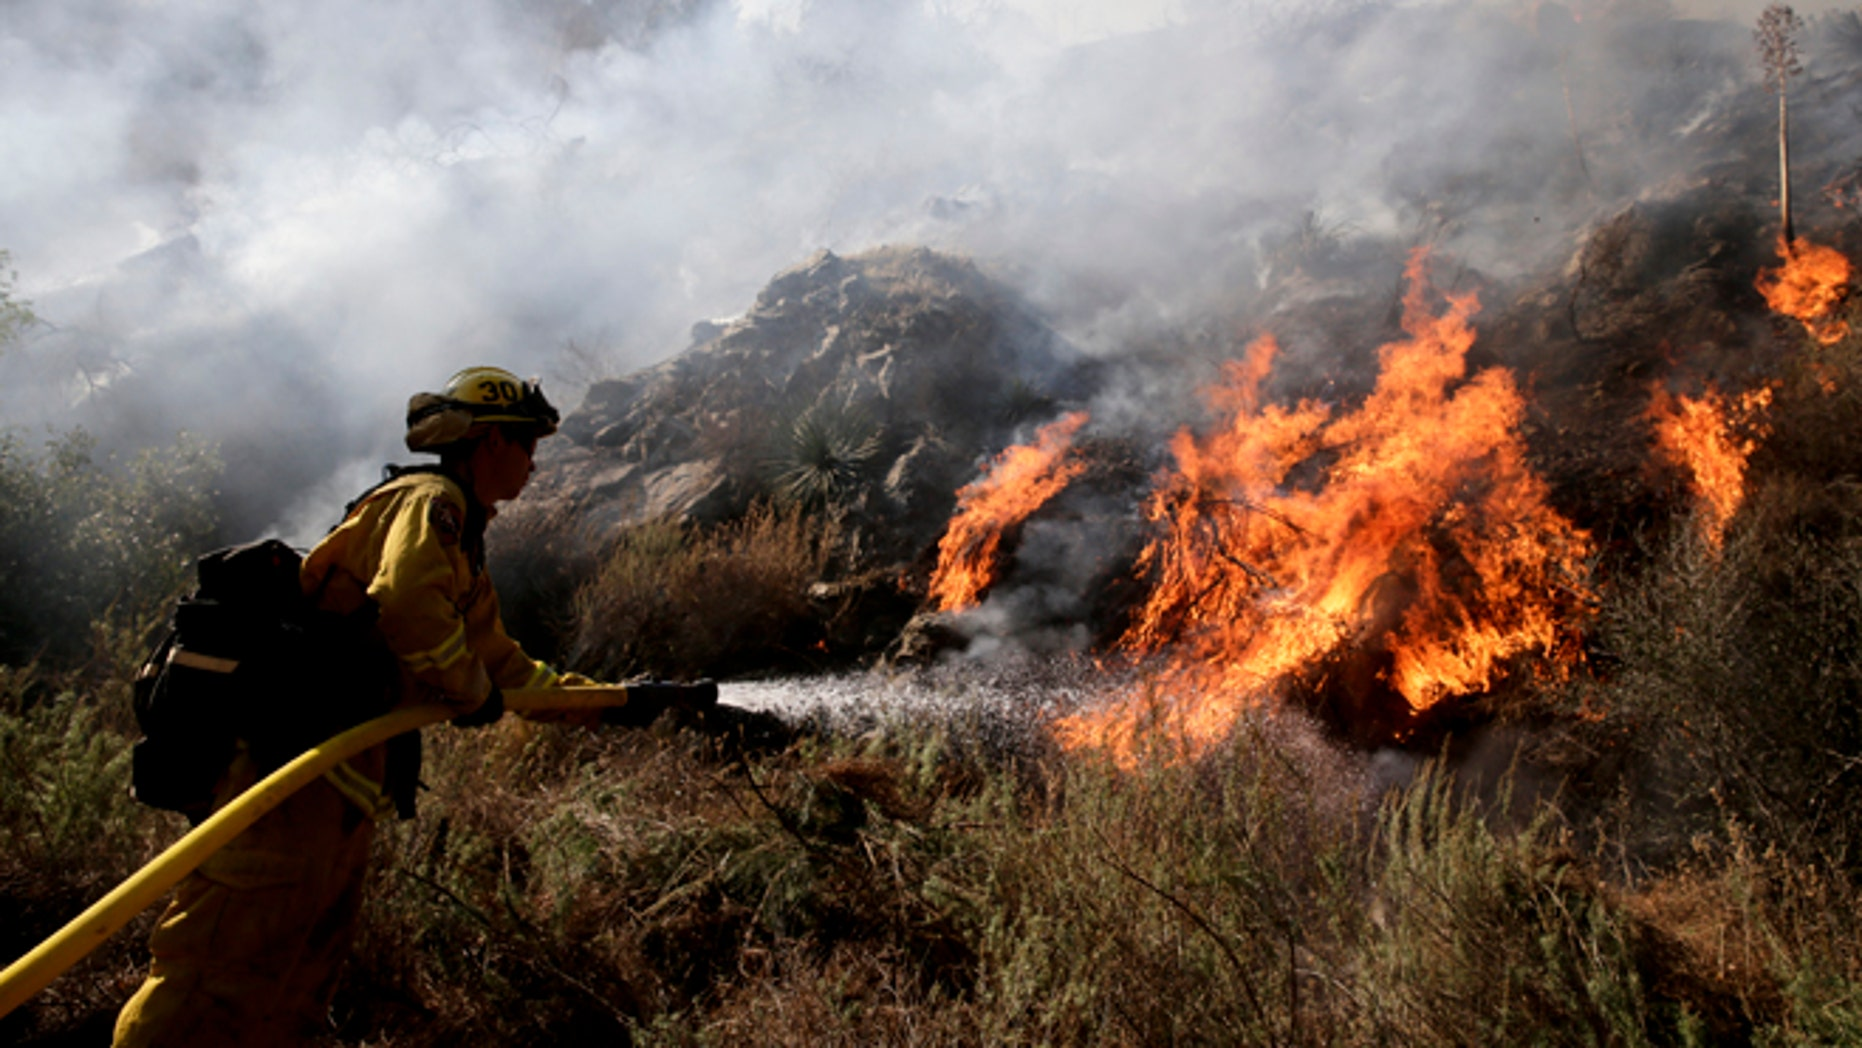 Firefighter Jeff Newby sprays water as he battles the Colby Fire on Friday, Jan. 17, 2014, near Azusa, Calif. Firefighters were chasing flare-ups Friday morning in a damaging wildfire that was largely tamed but kept thousands of people from their homes in the foothill suburbs northeast of Los Angeles.(AP Photo/Jae C. Hong)